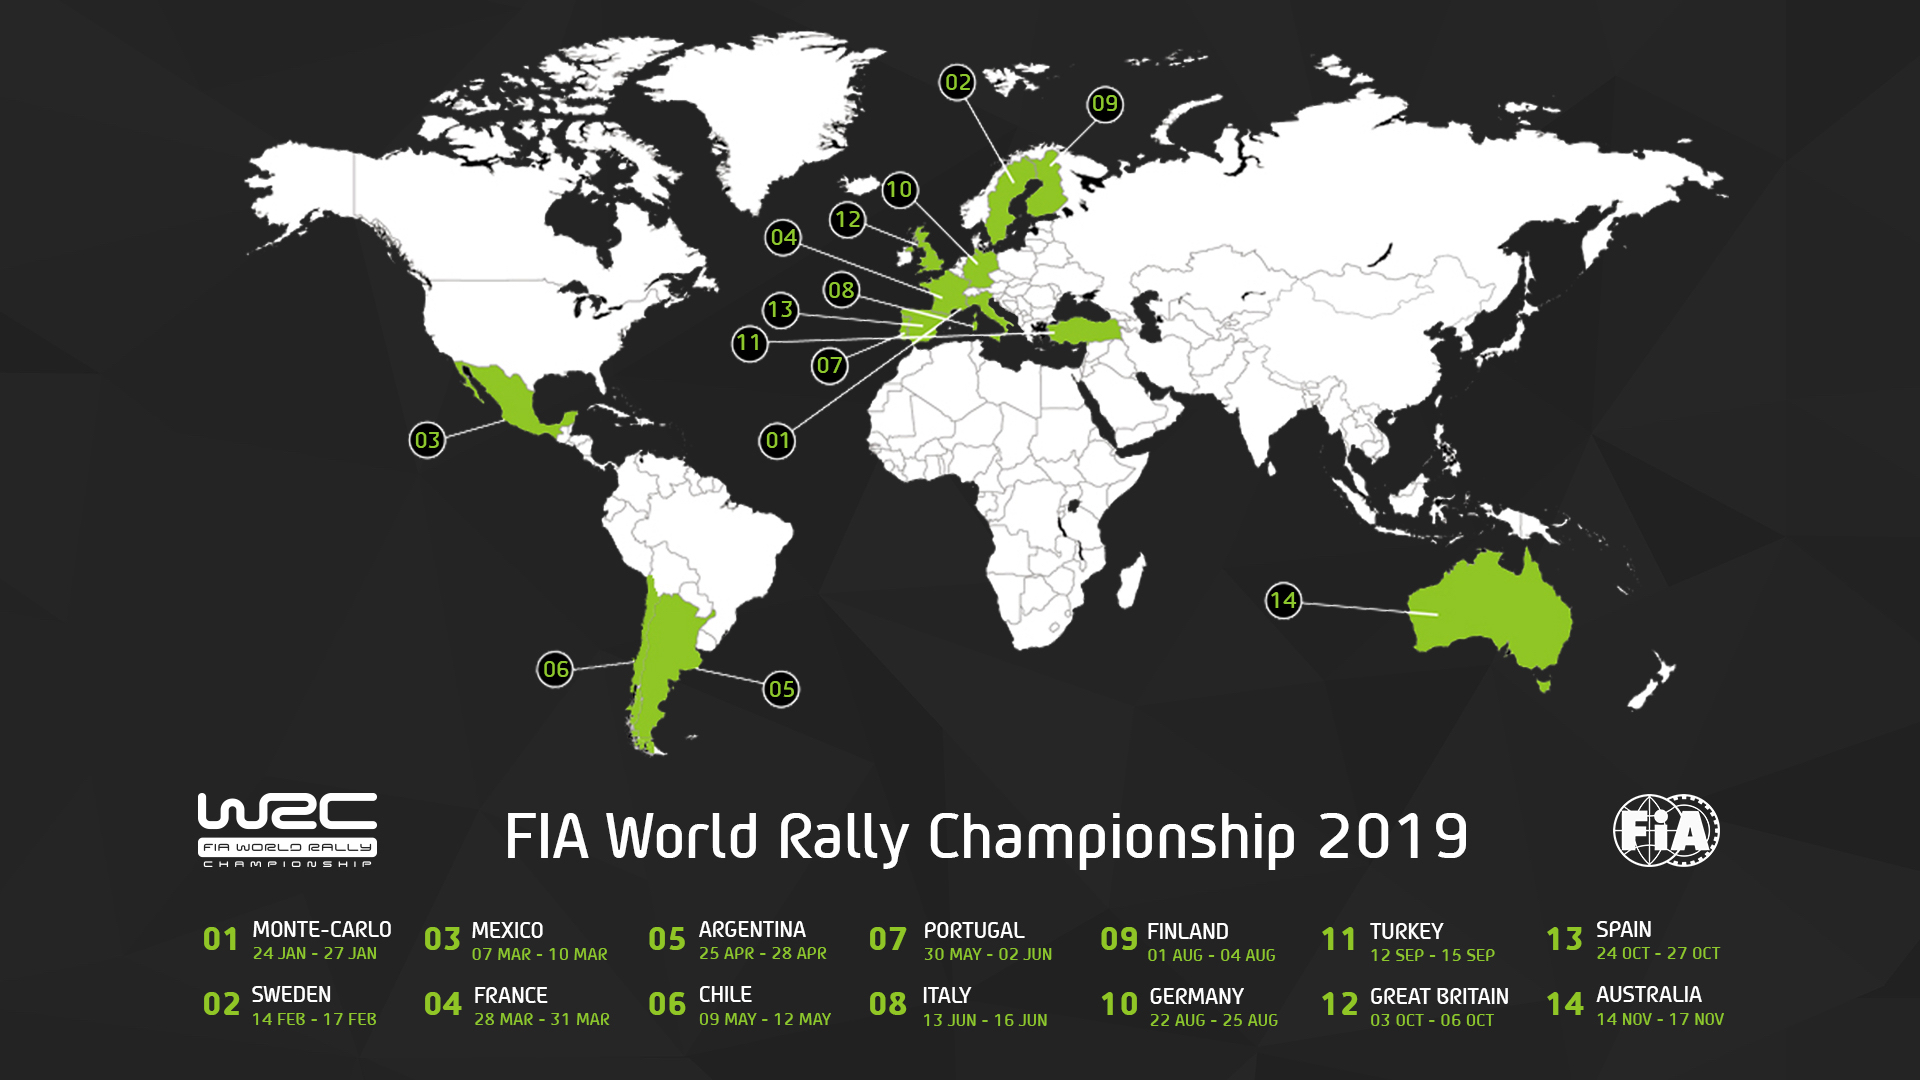 Chile joins expanded 2019 WRC calendar